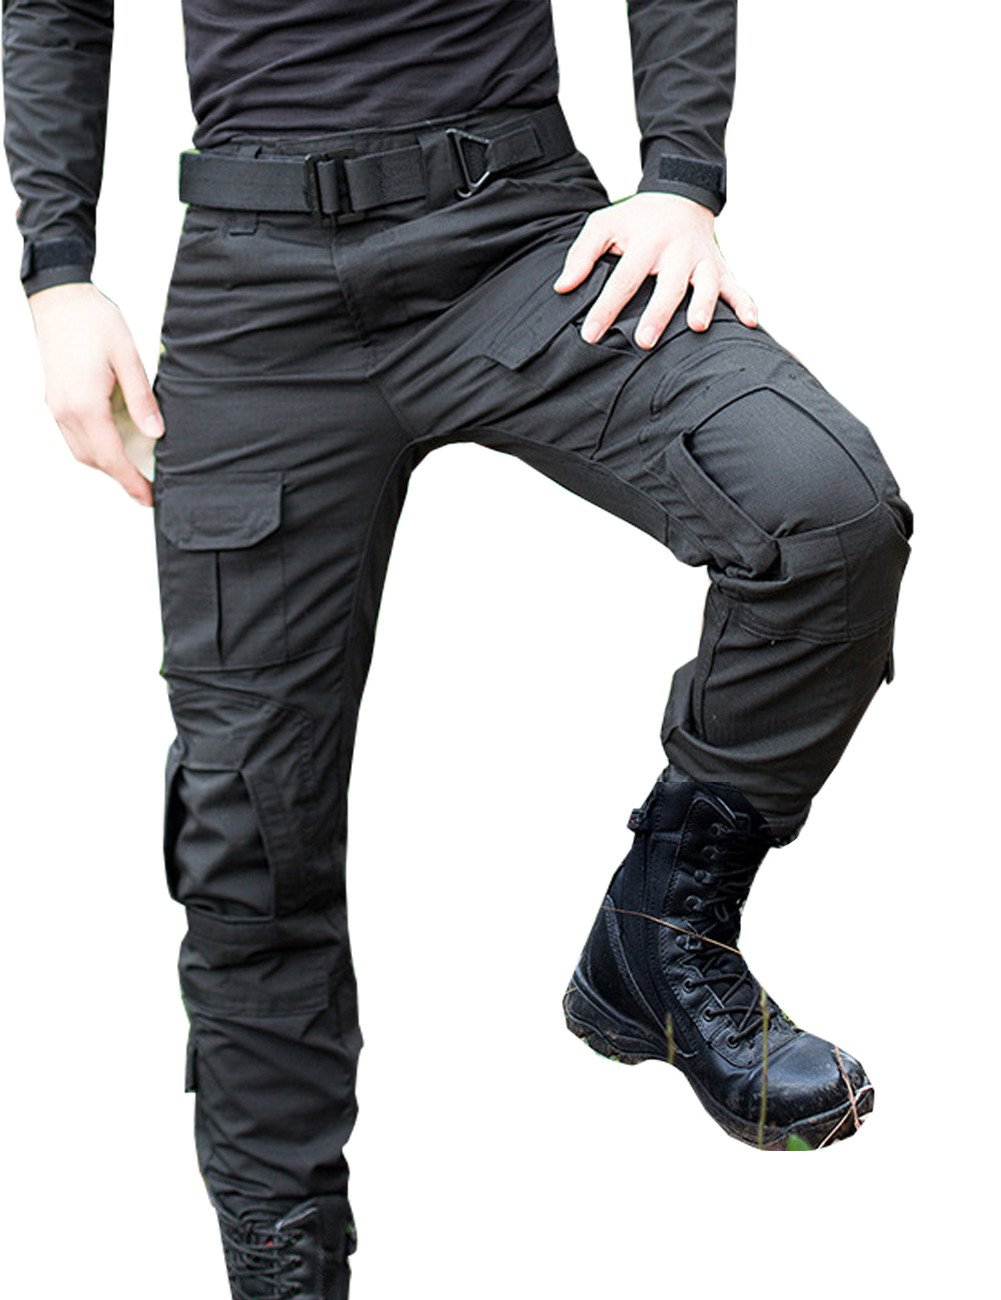 Yollmart Men's Military-Style Army Cargo Pants Outdoors Pants US 31=Tag 32